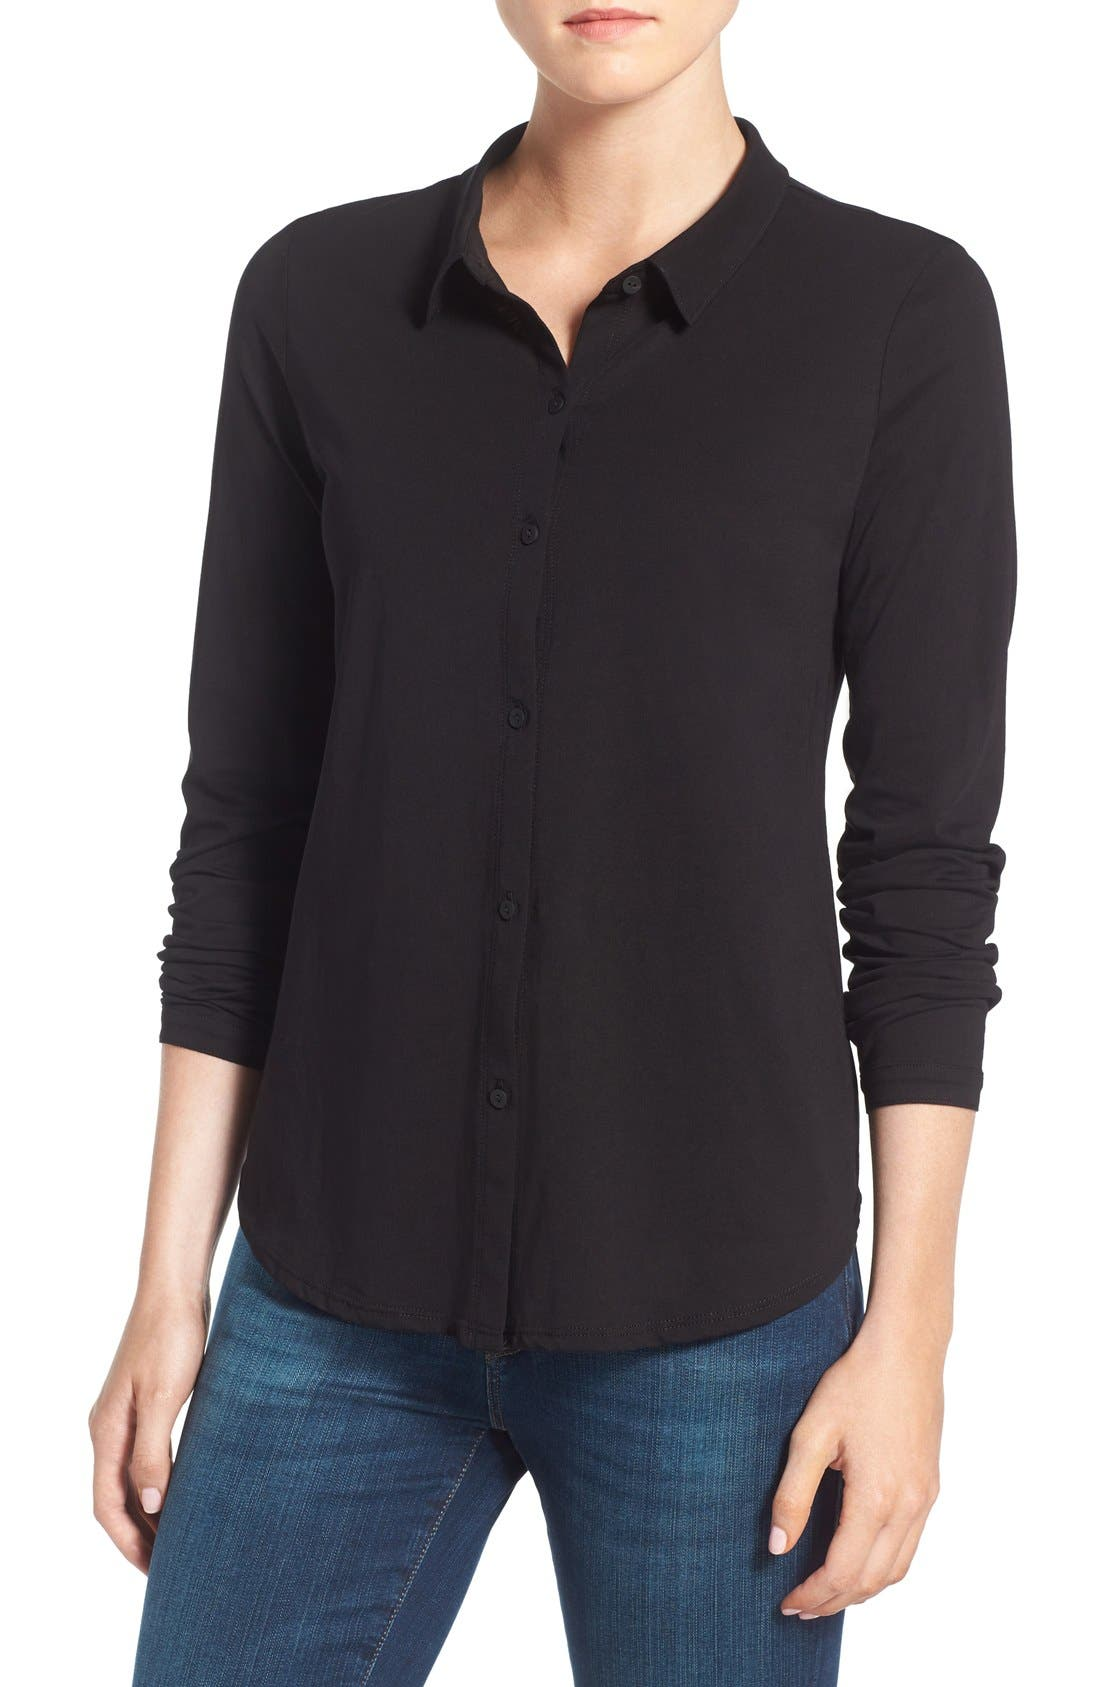 Alternate Image 1 Selected - Eileen Fisher Organic Cotton Jersey Classic Collar Shirt